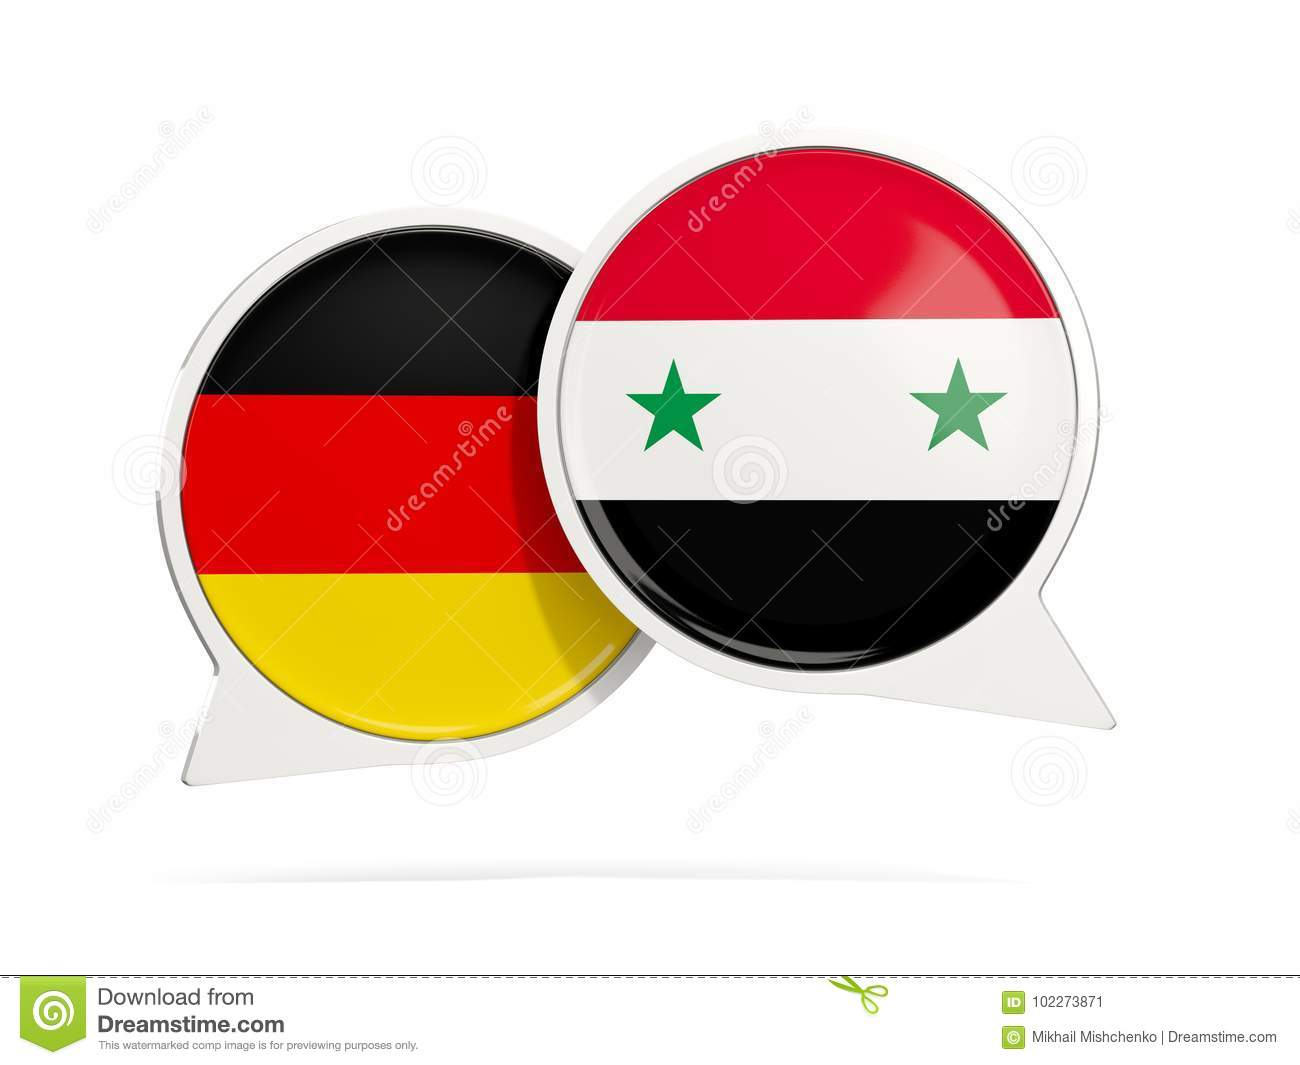 Syria chat